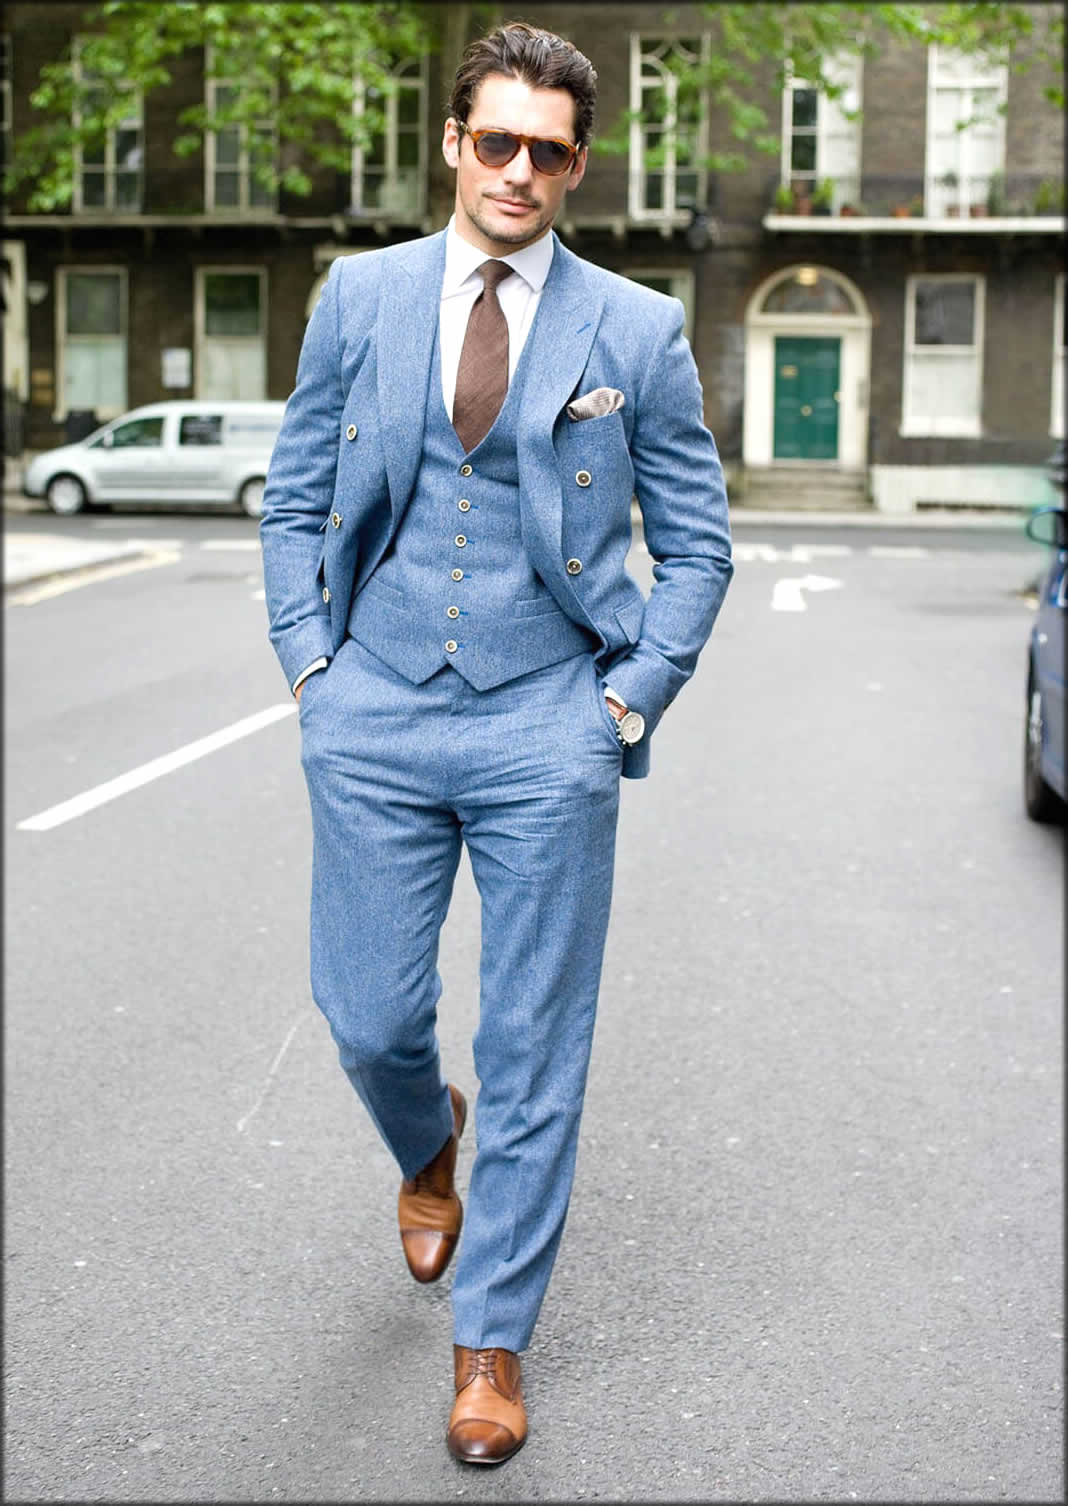 Groom to be Suit up Style